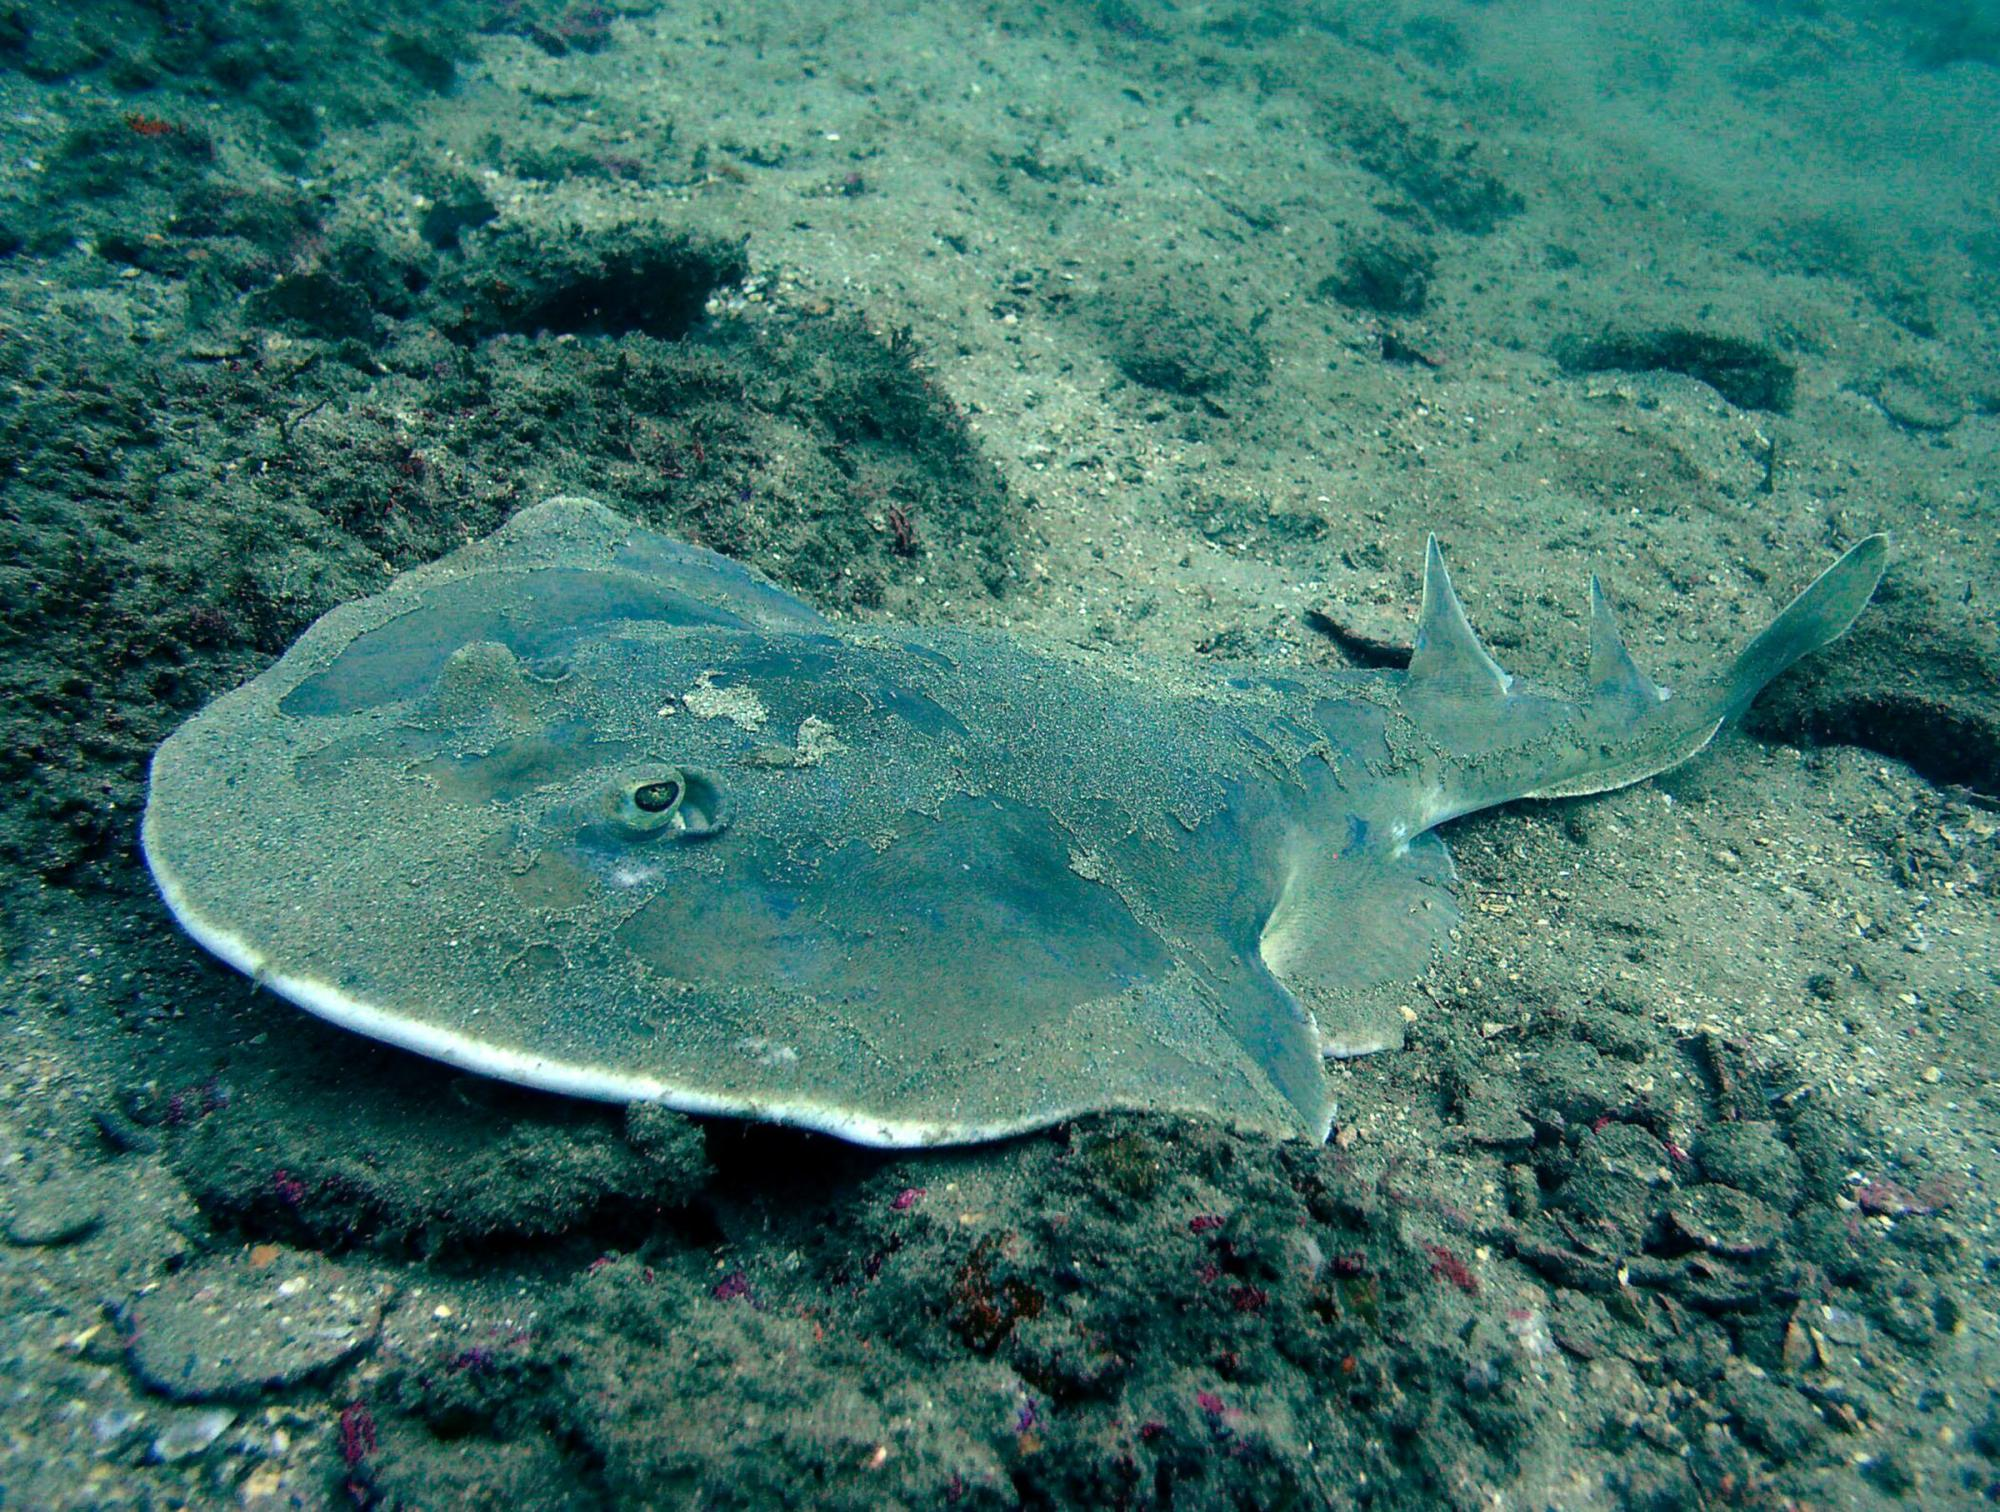 hight resolution of other sharks such as the angel shark have flat bodies that allow them to hide easily on the bottom of the ocean floor some sharks have extra long snouts